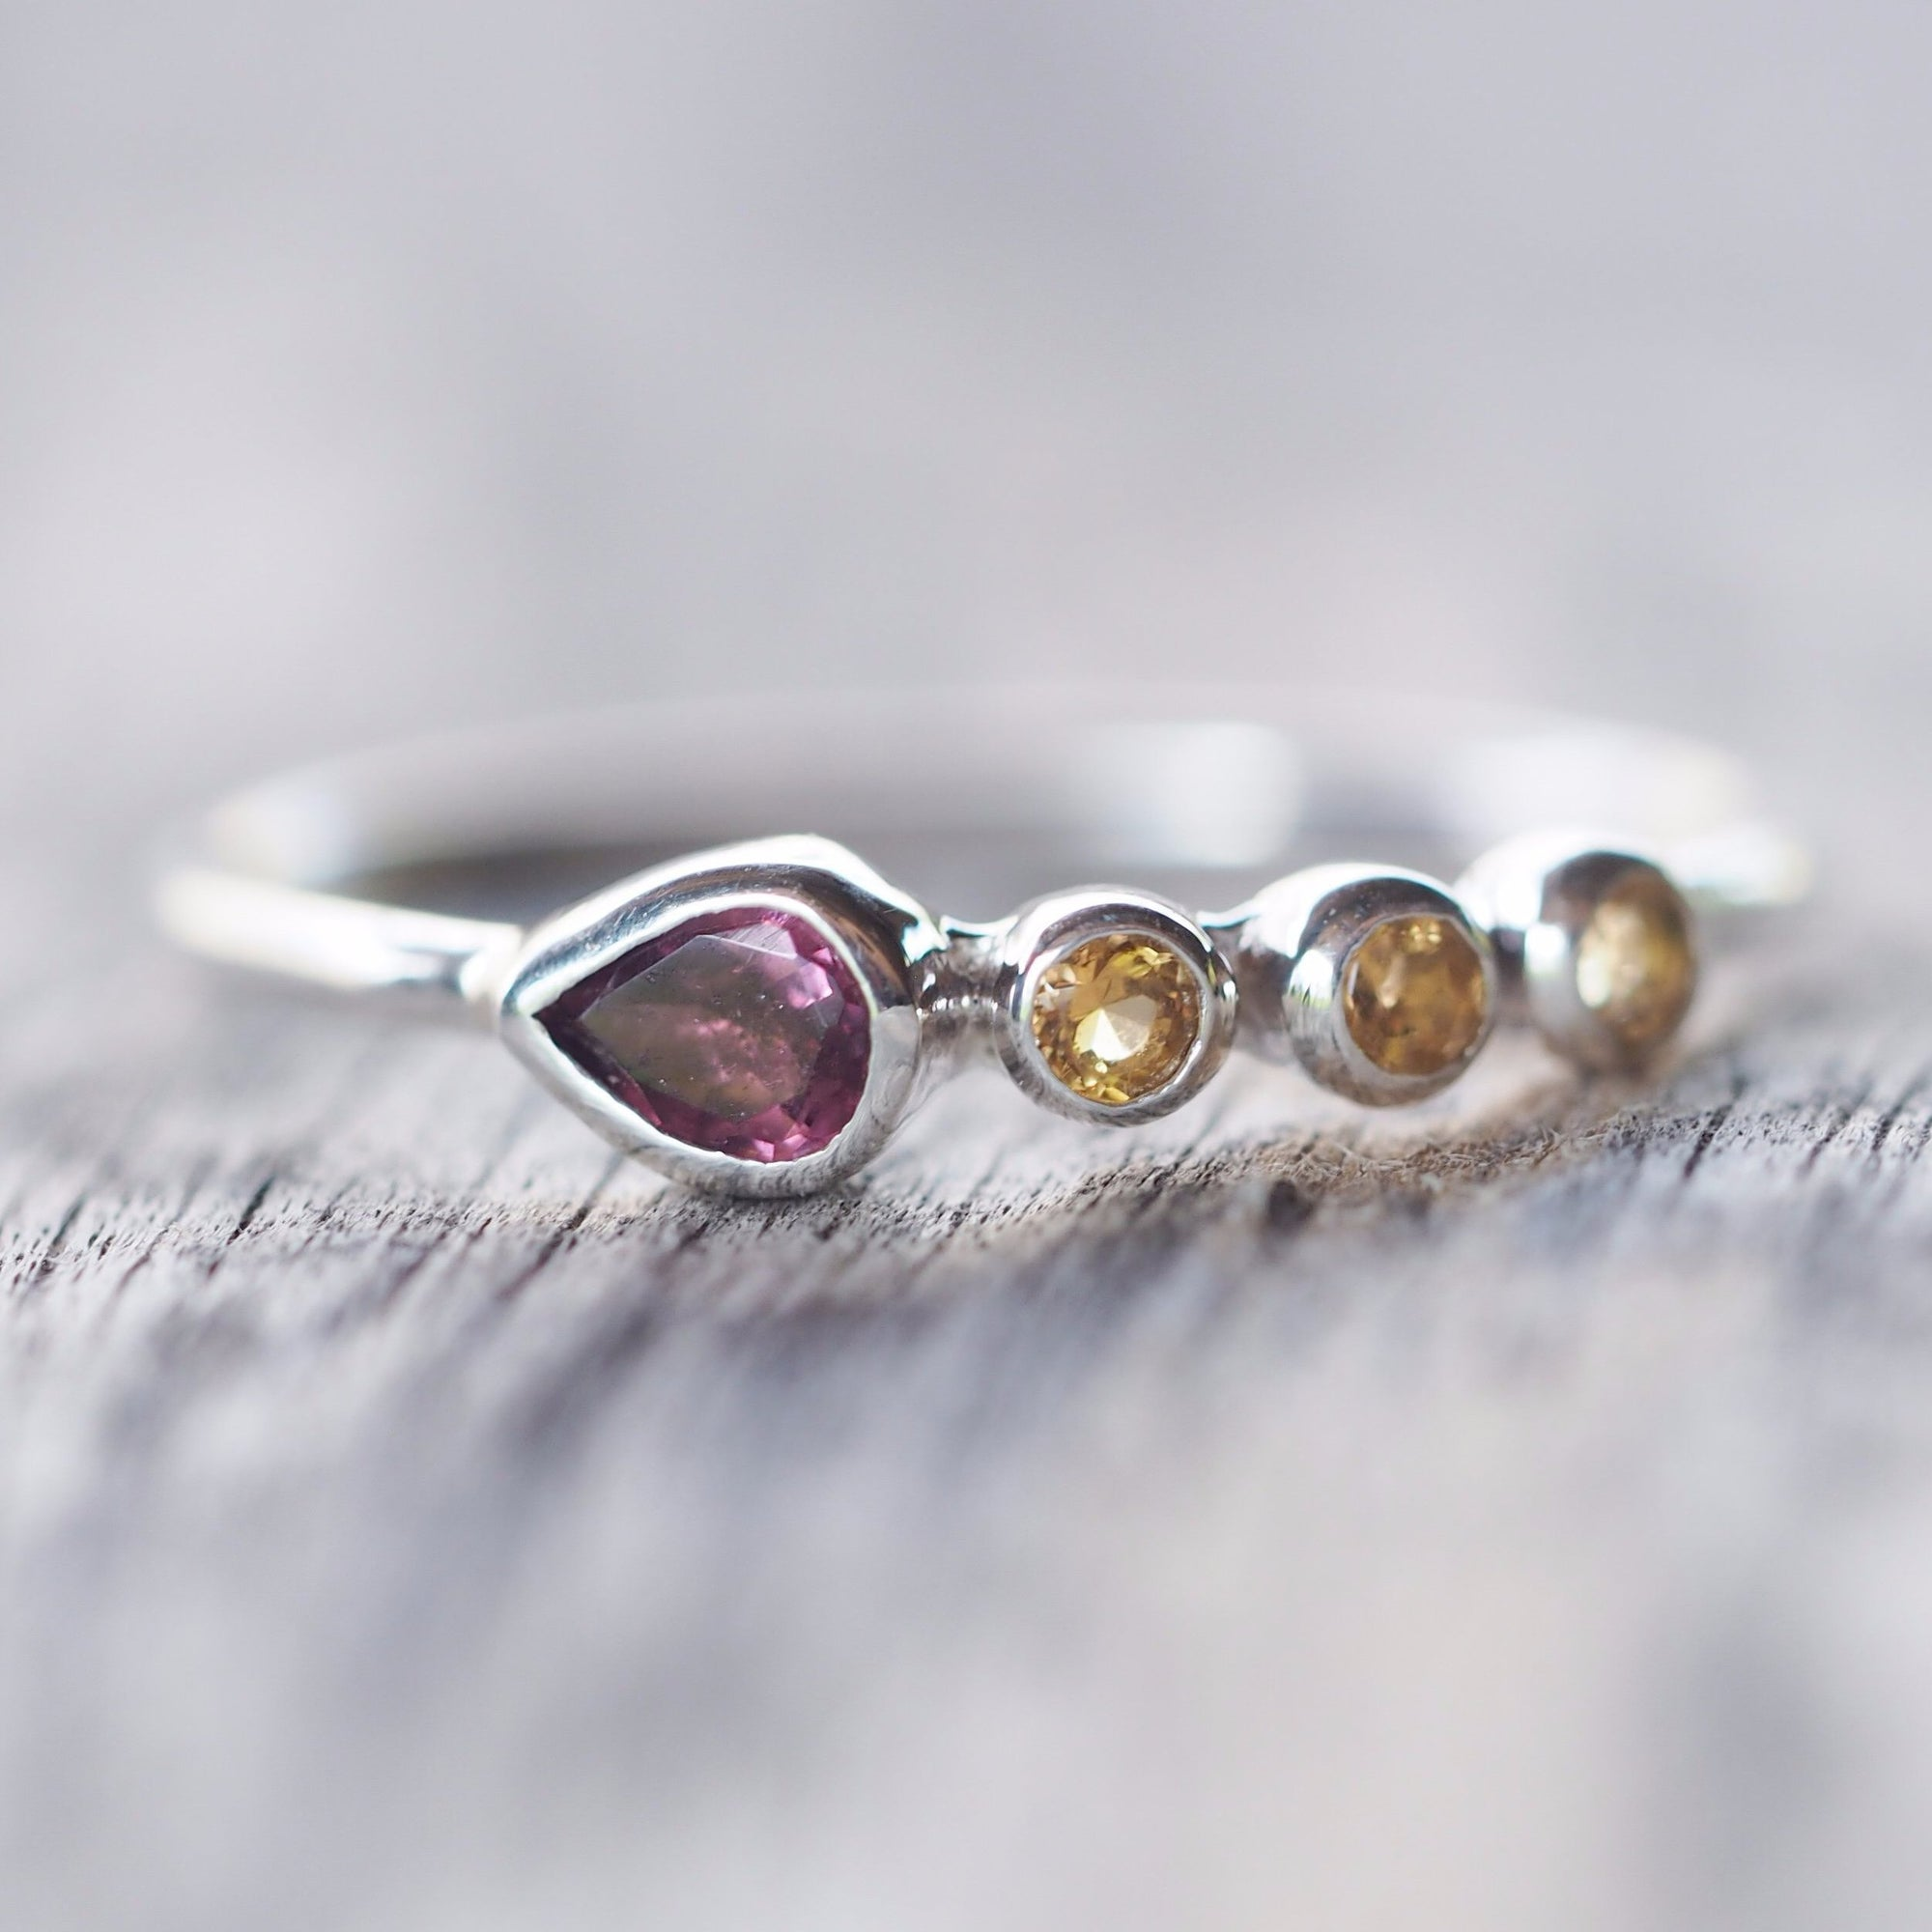 Pear Rhodolite Garnet and Citrine Ring